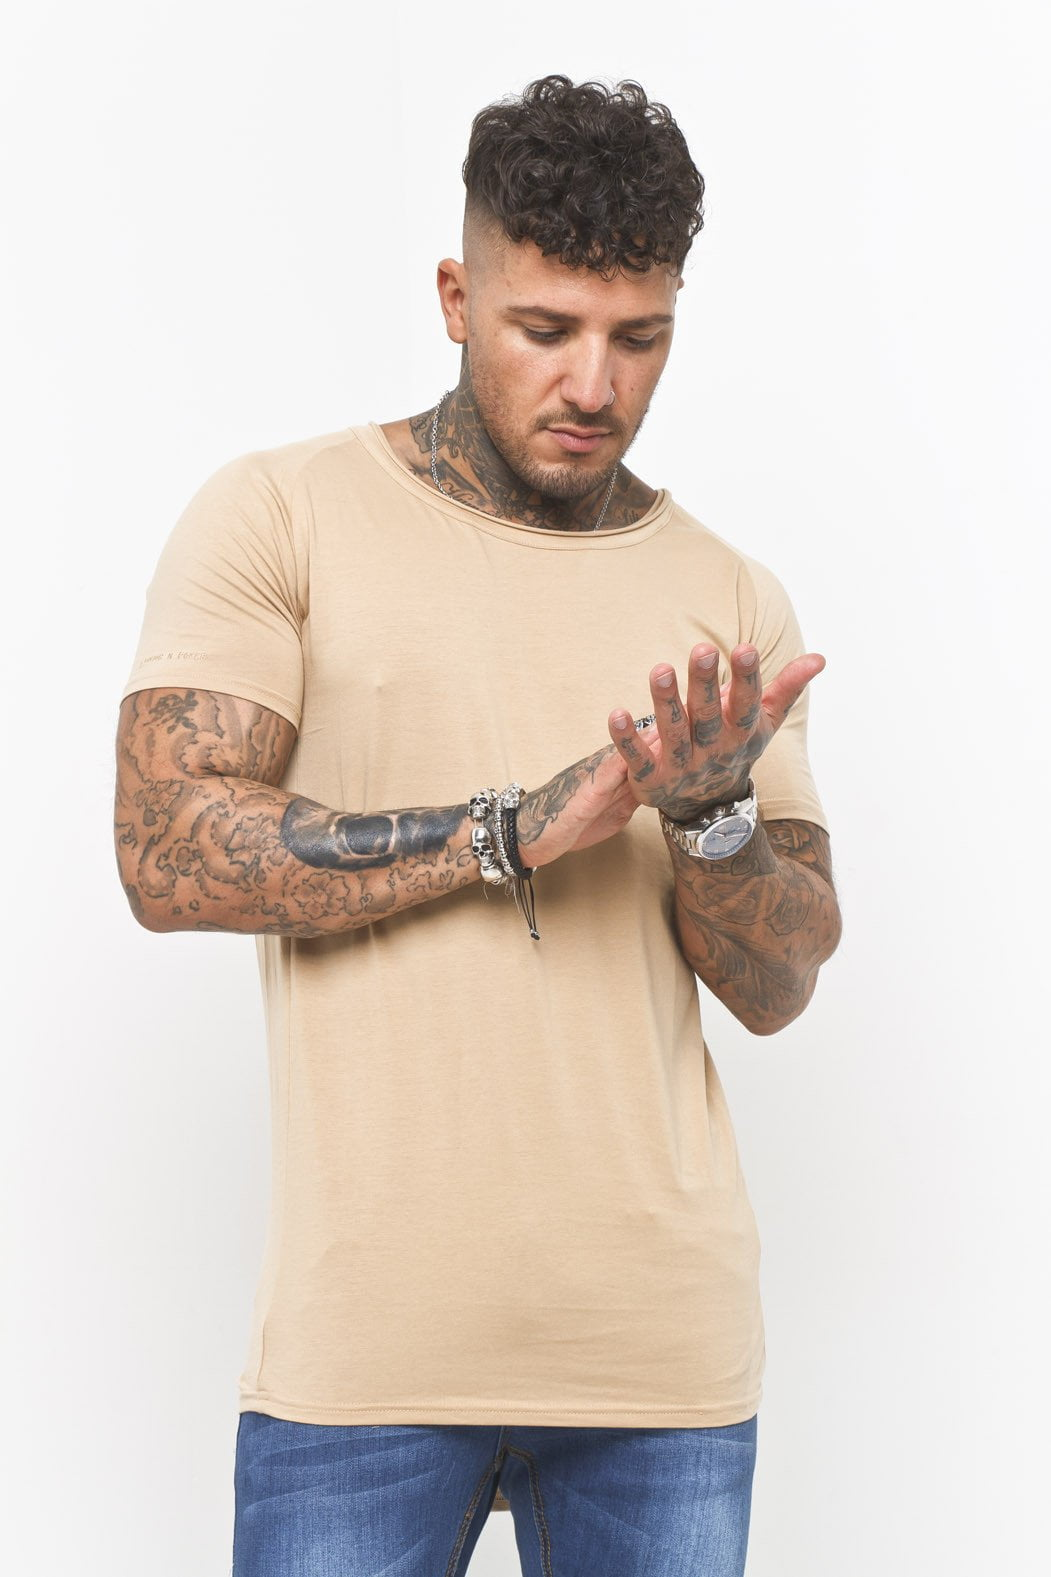 Liquor n Poker - Scoop neck muscle fit t shirt in Beige - Liquor N Poker  Liquor N Poker